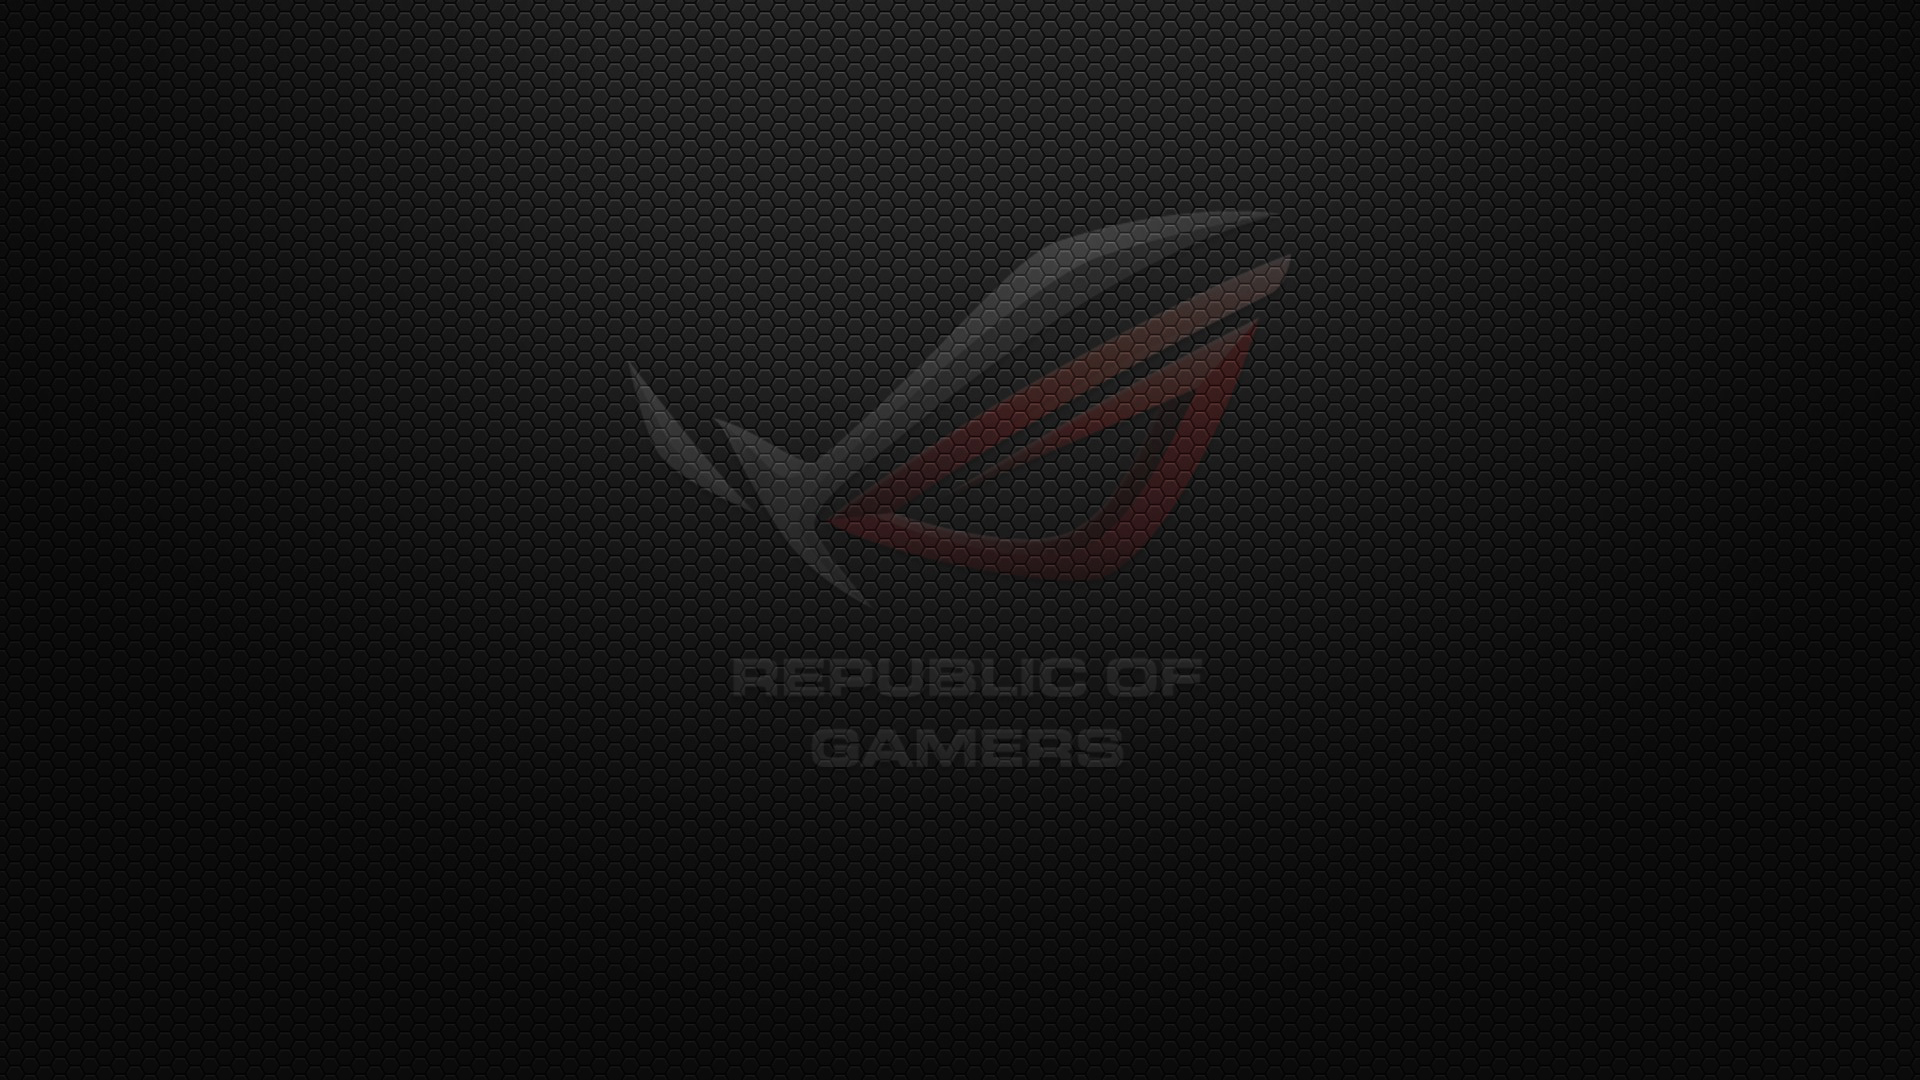 38 Asus Rog Wallpaper 1920x1080 On Wallpapersafari